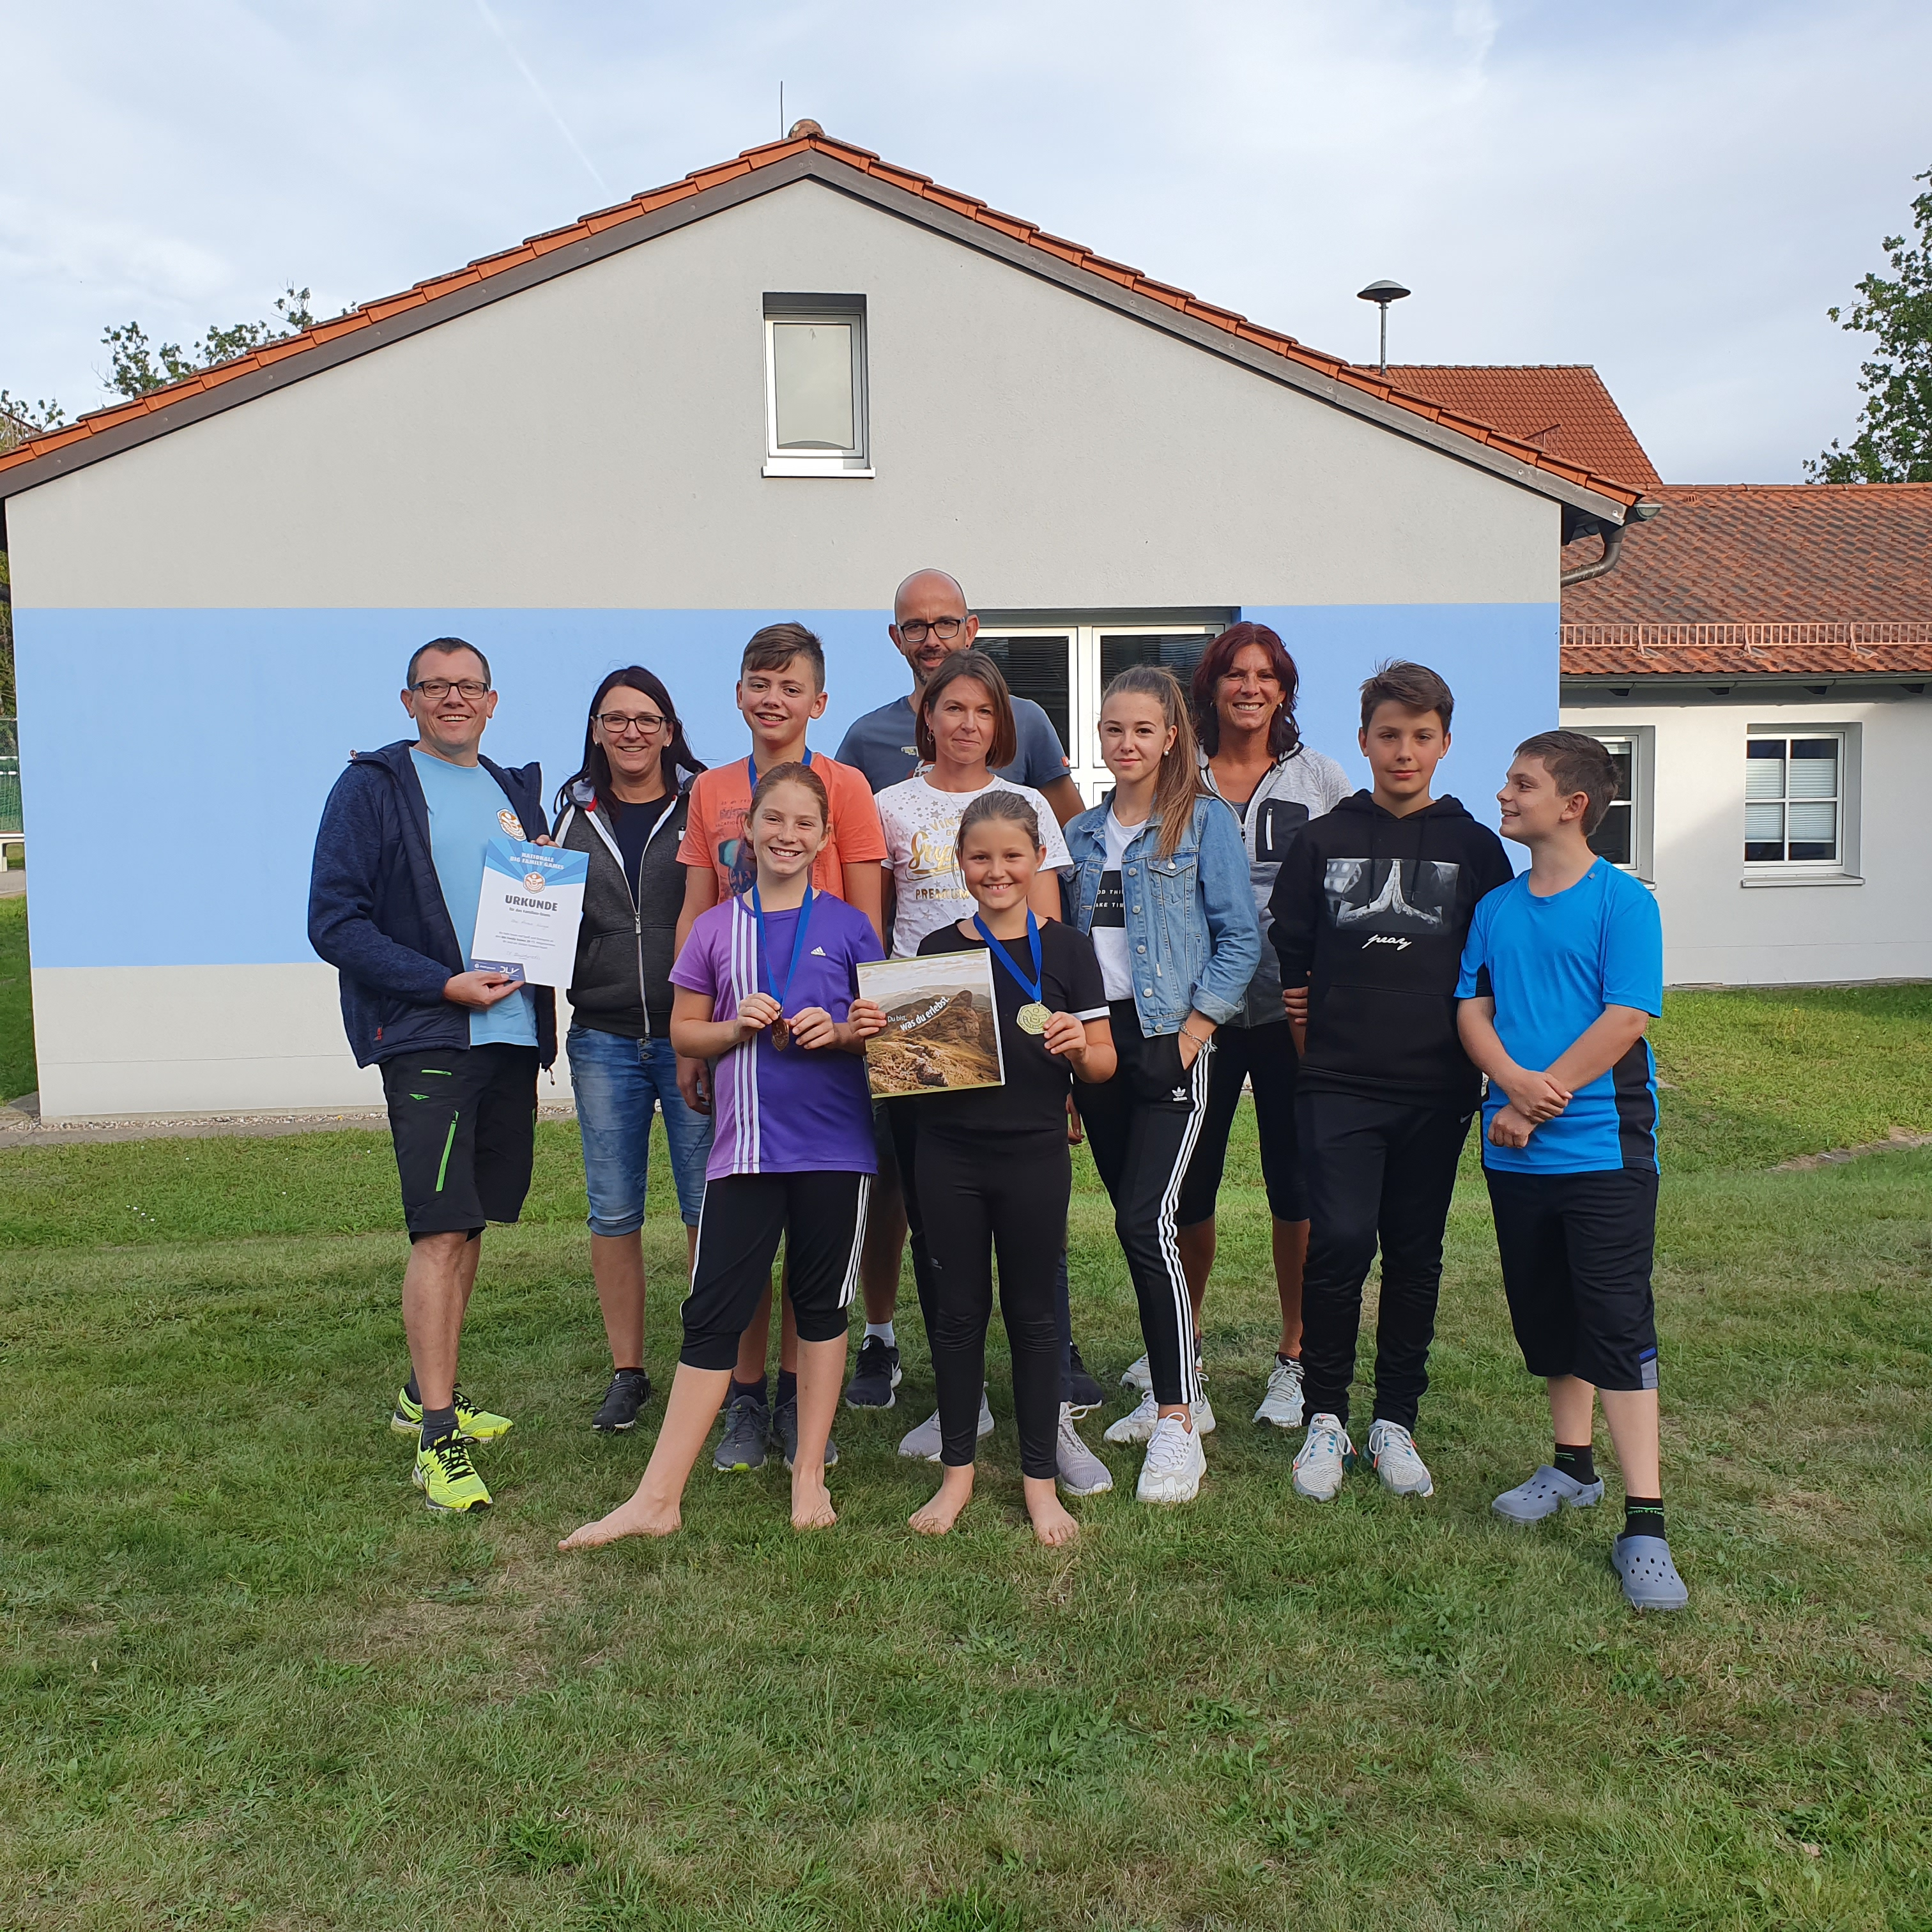 Sieger big family day